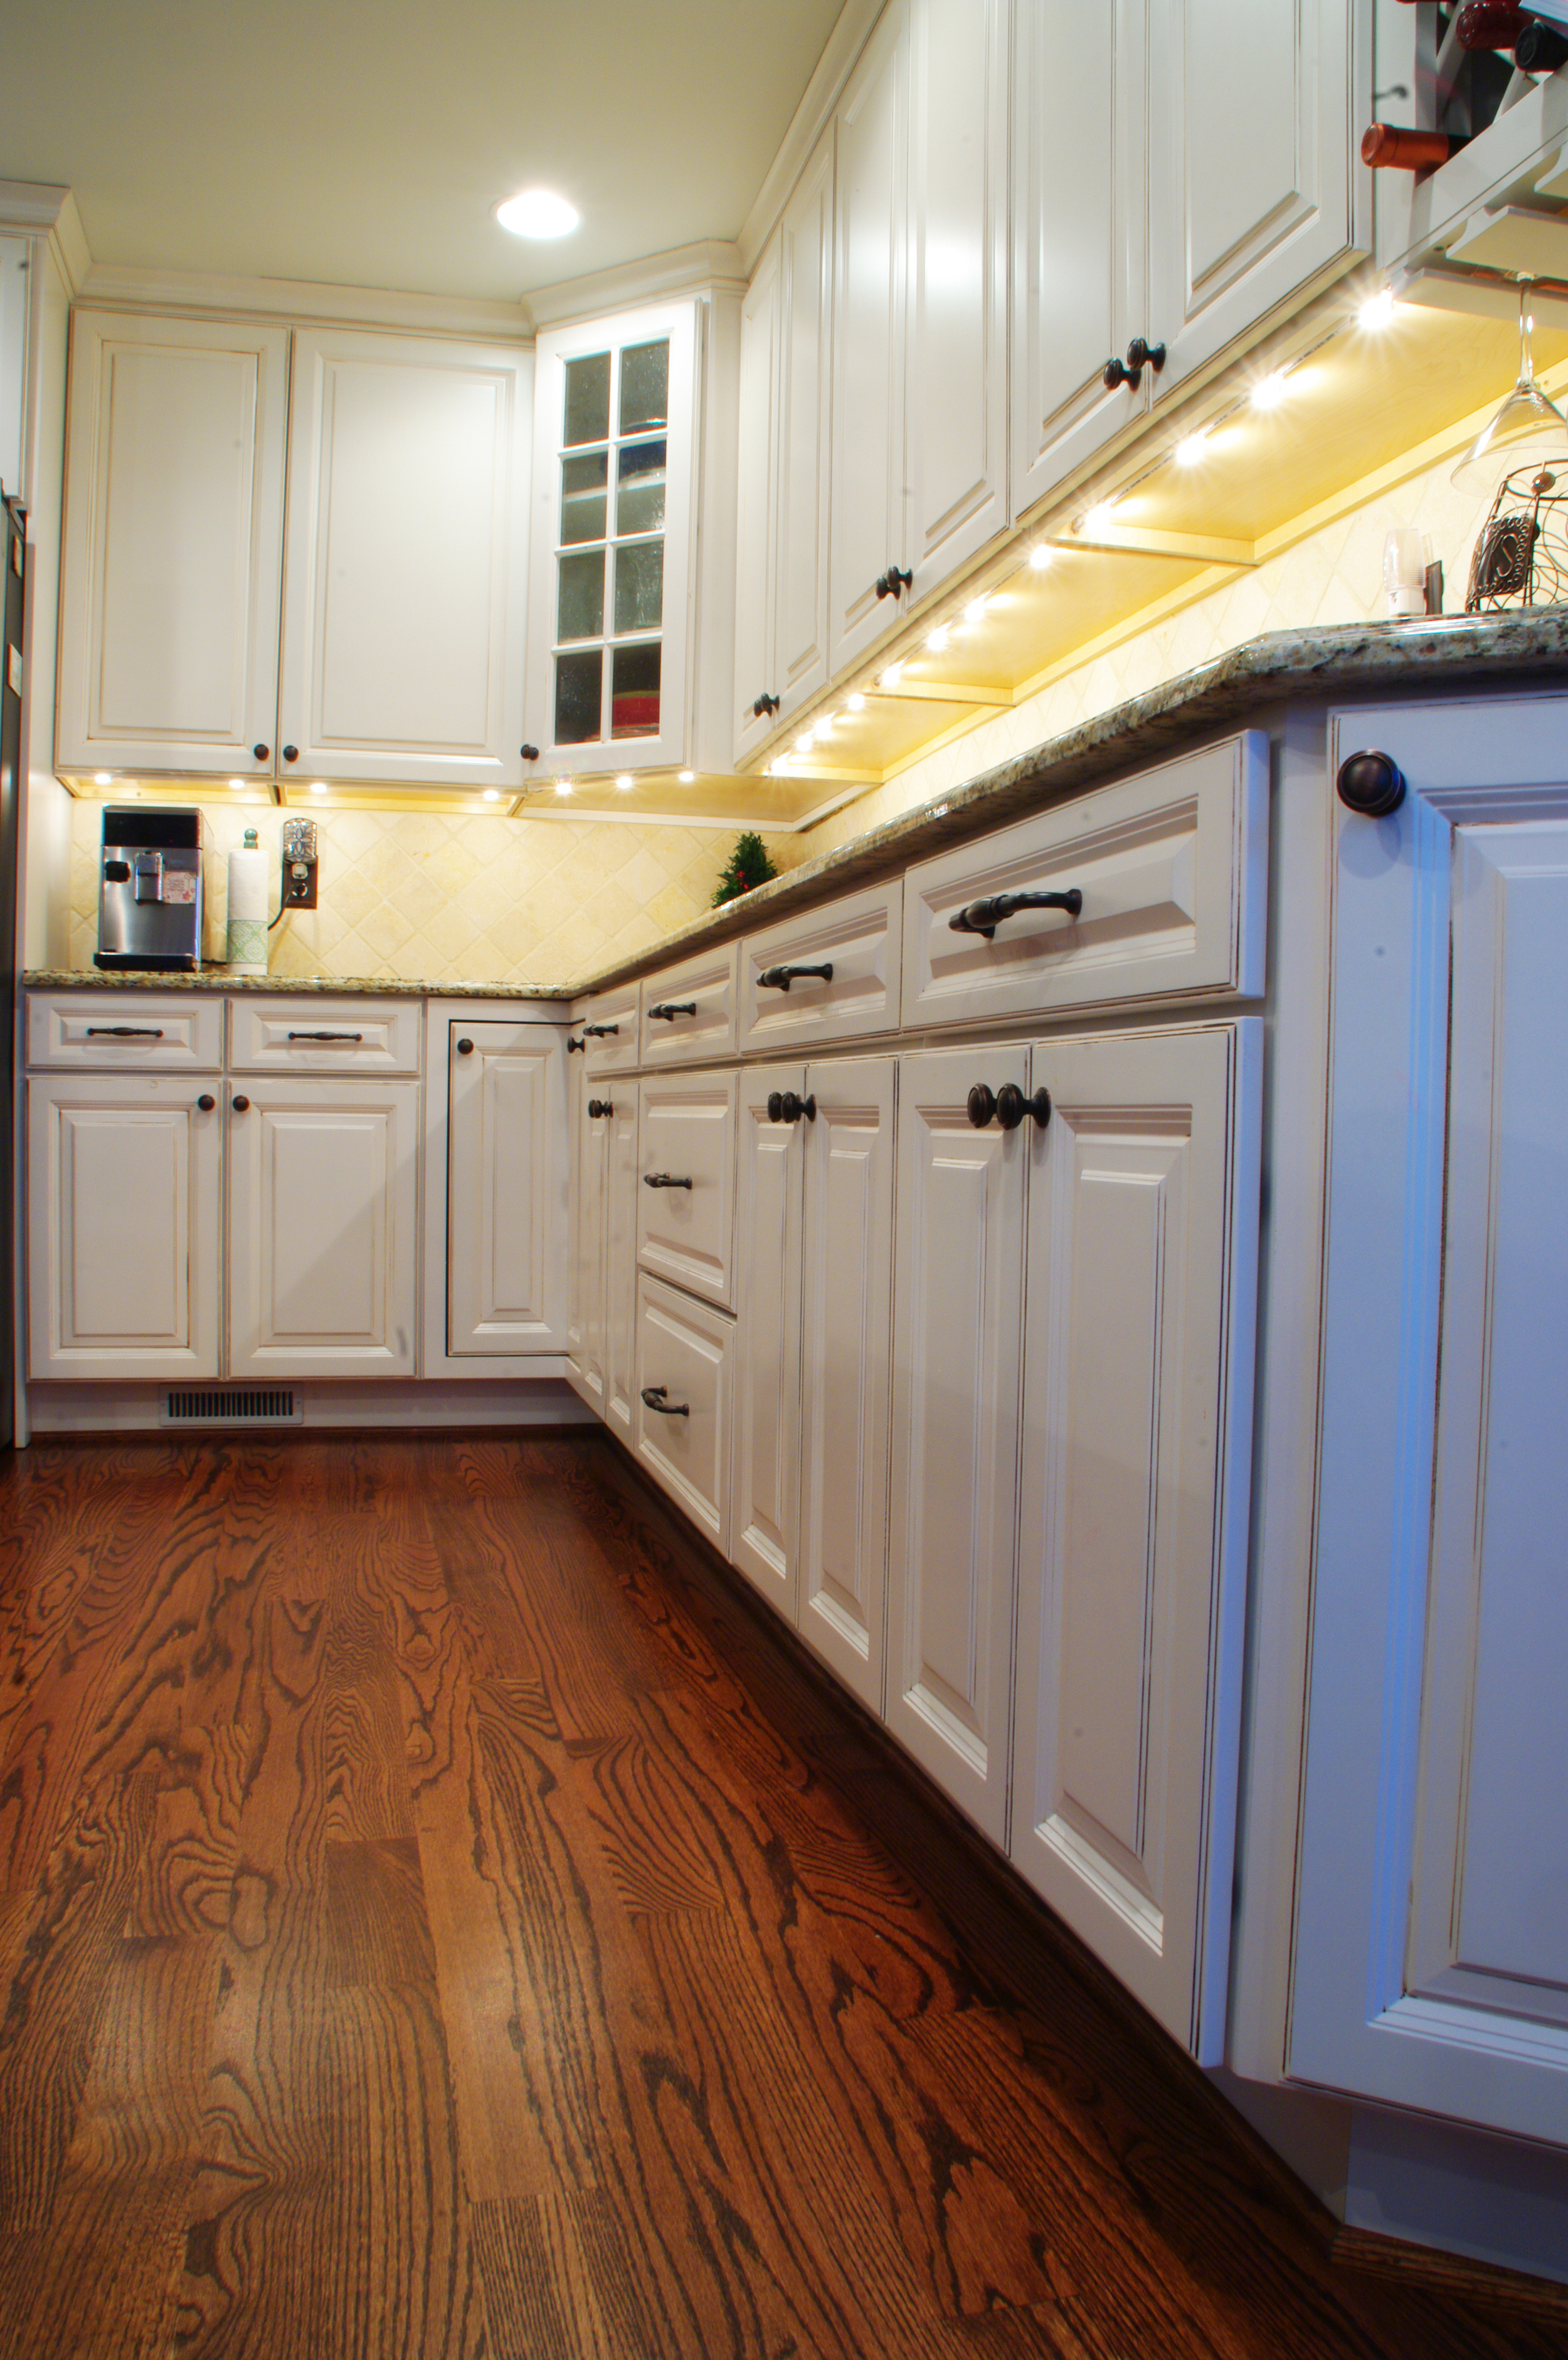 Beautiful contrast of the light cabinetry with the dark oak flooring.